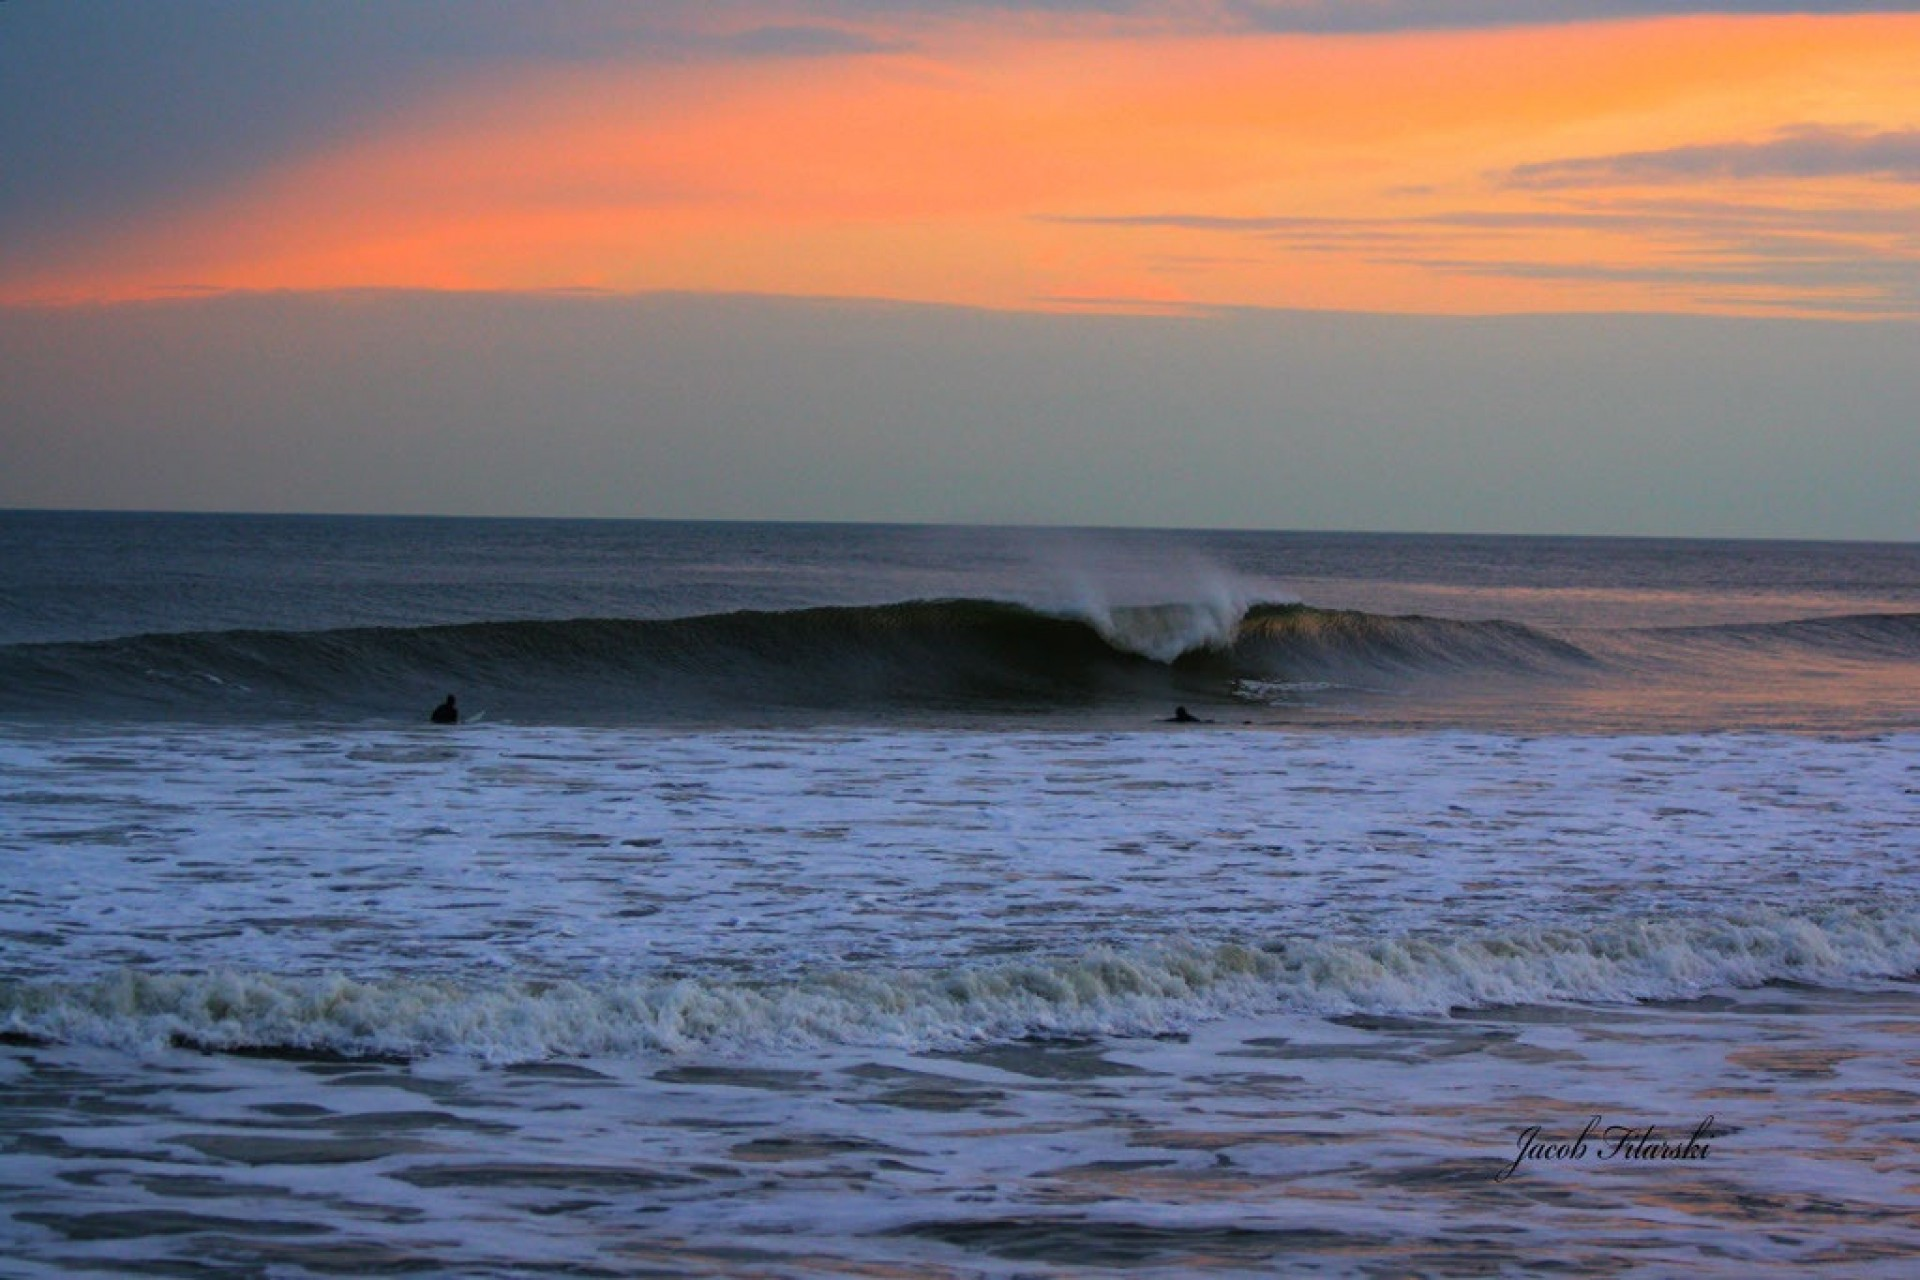 Jacobfilarski's photo of Ocean City, NJ